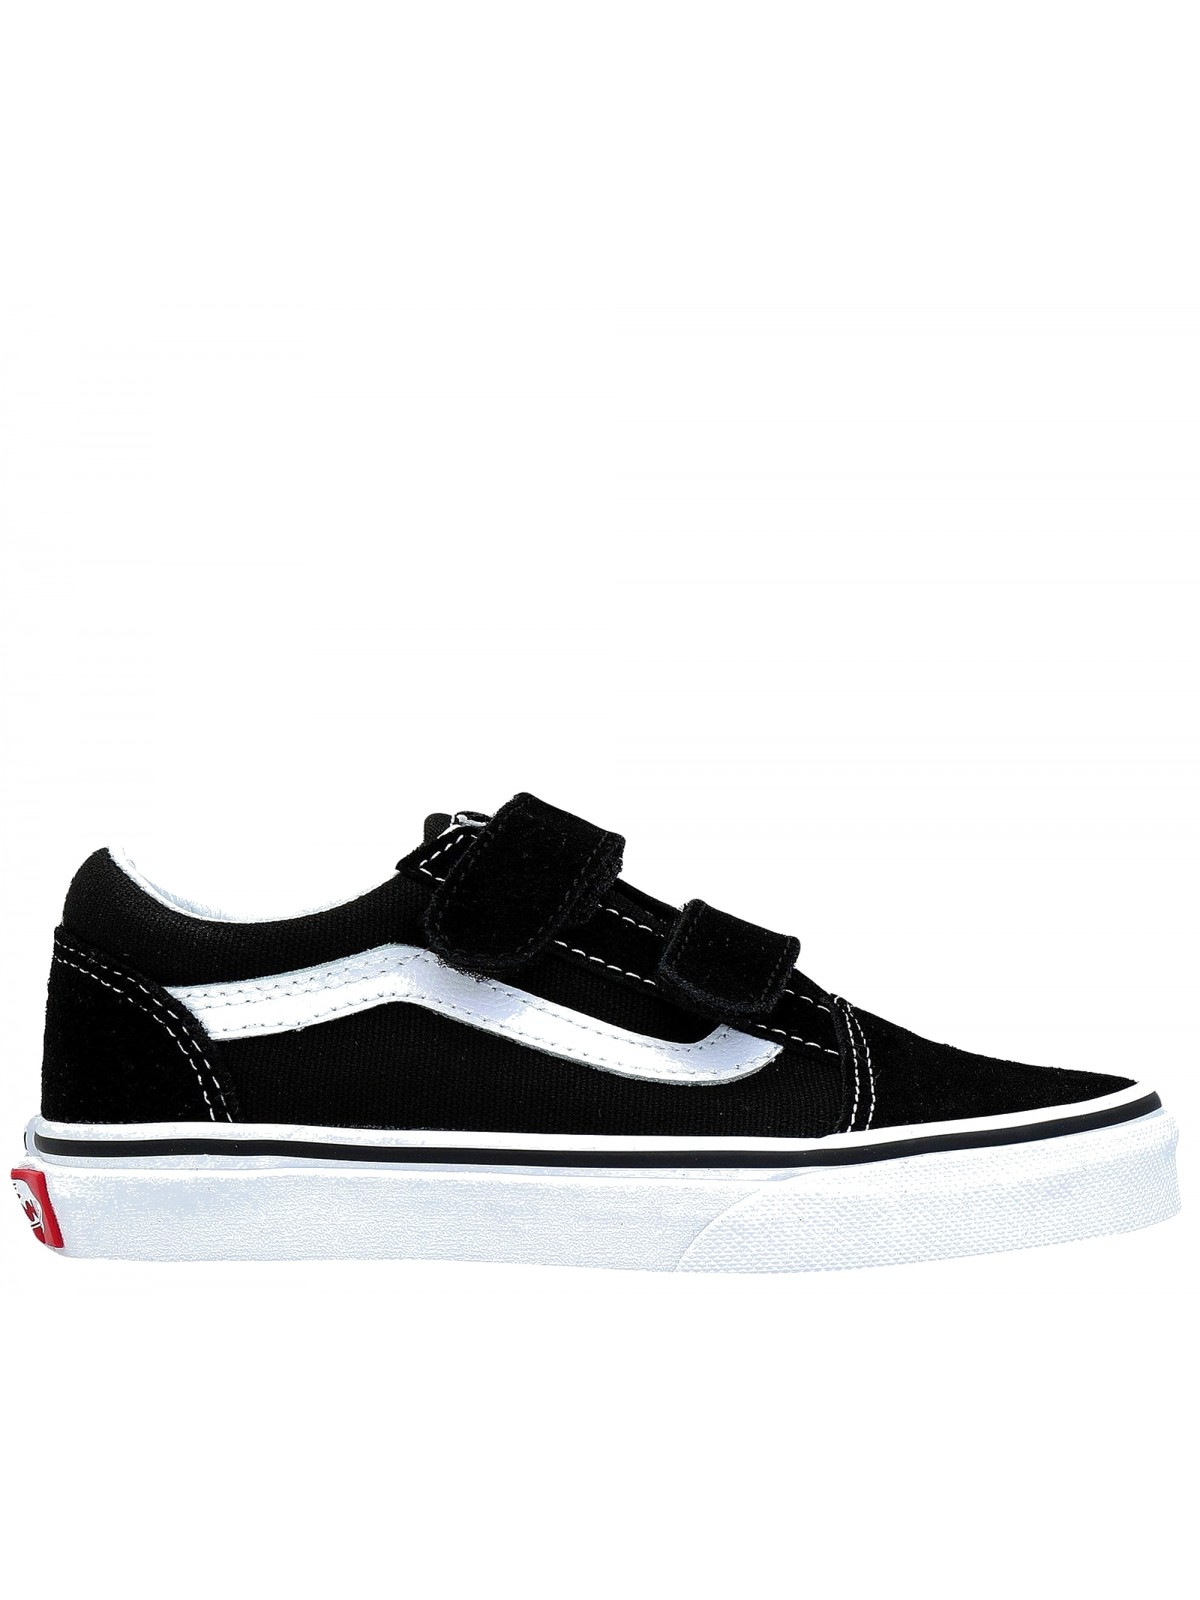 Vans Old Skool velcro noir blanc Old Skool Vans Marques